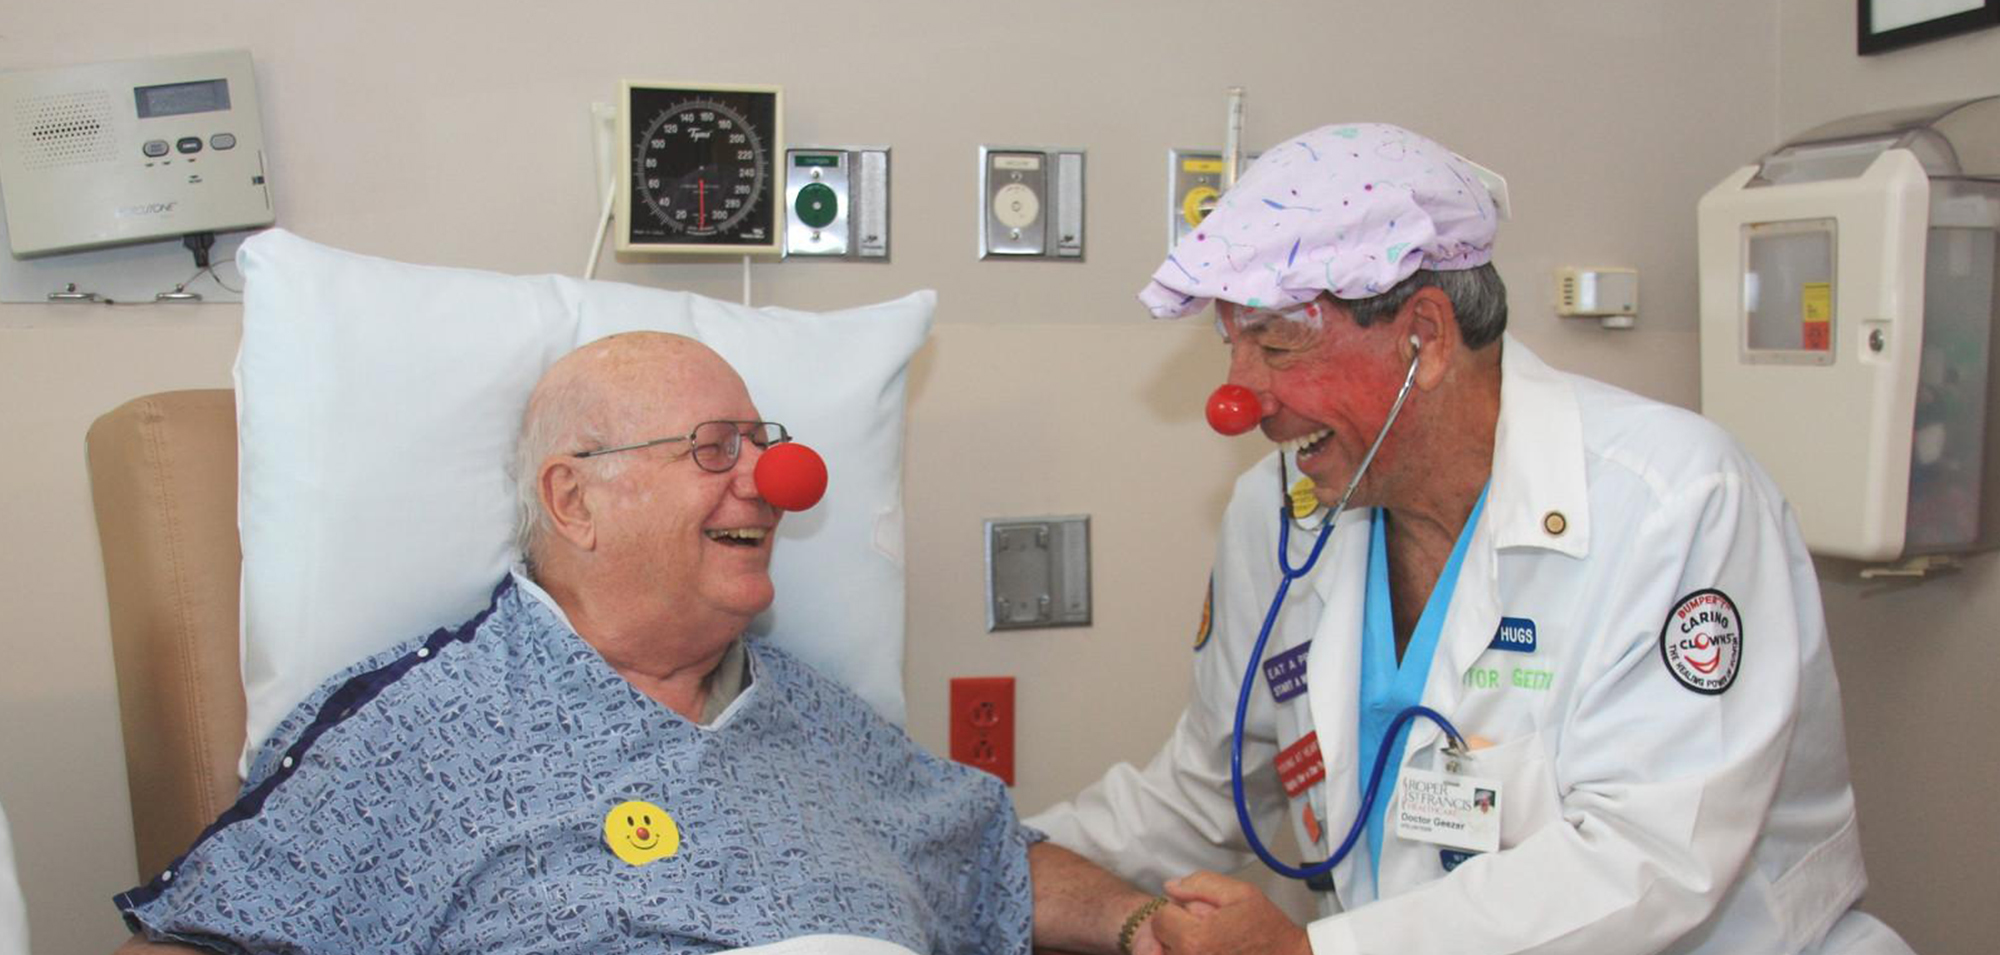 Bumper T Caring Hospital Clowns Inc.